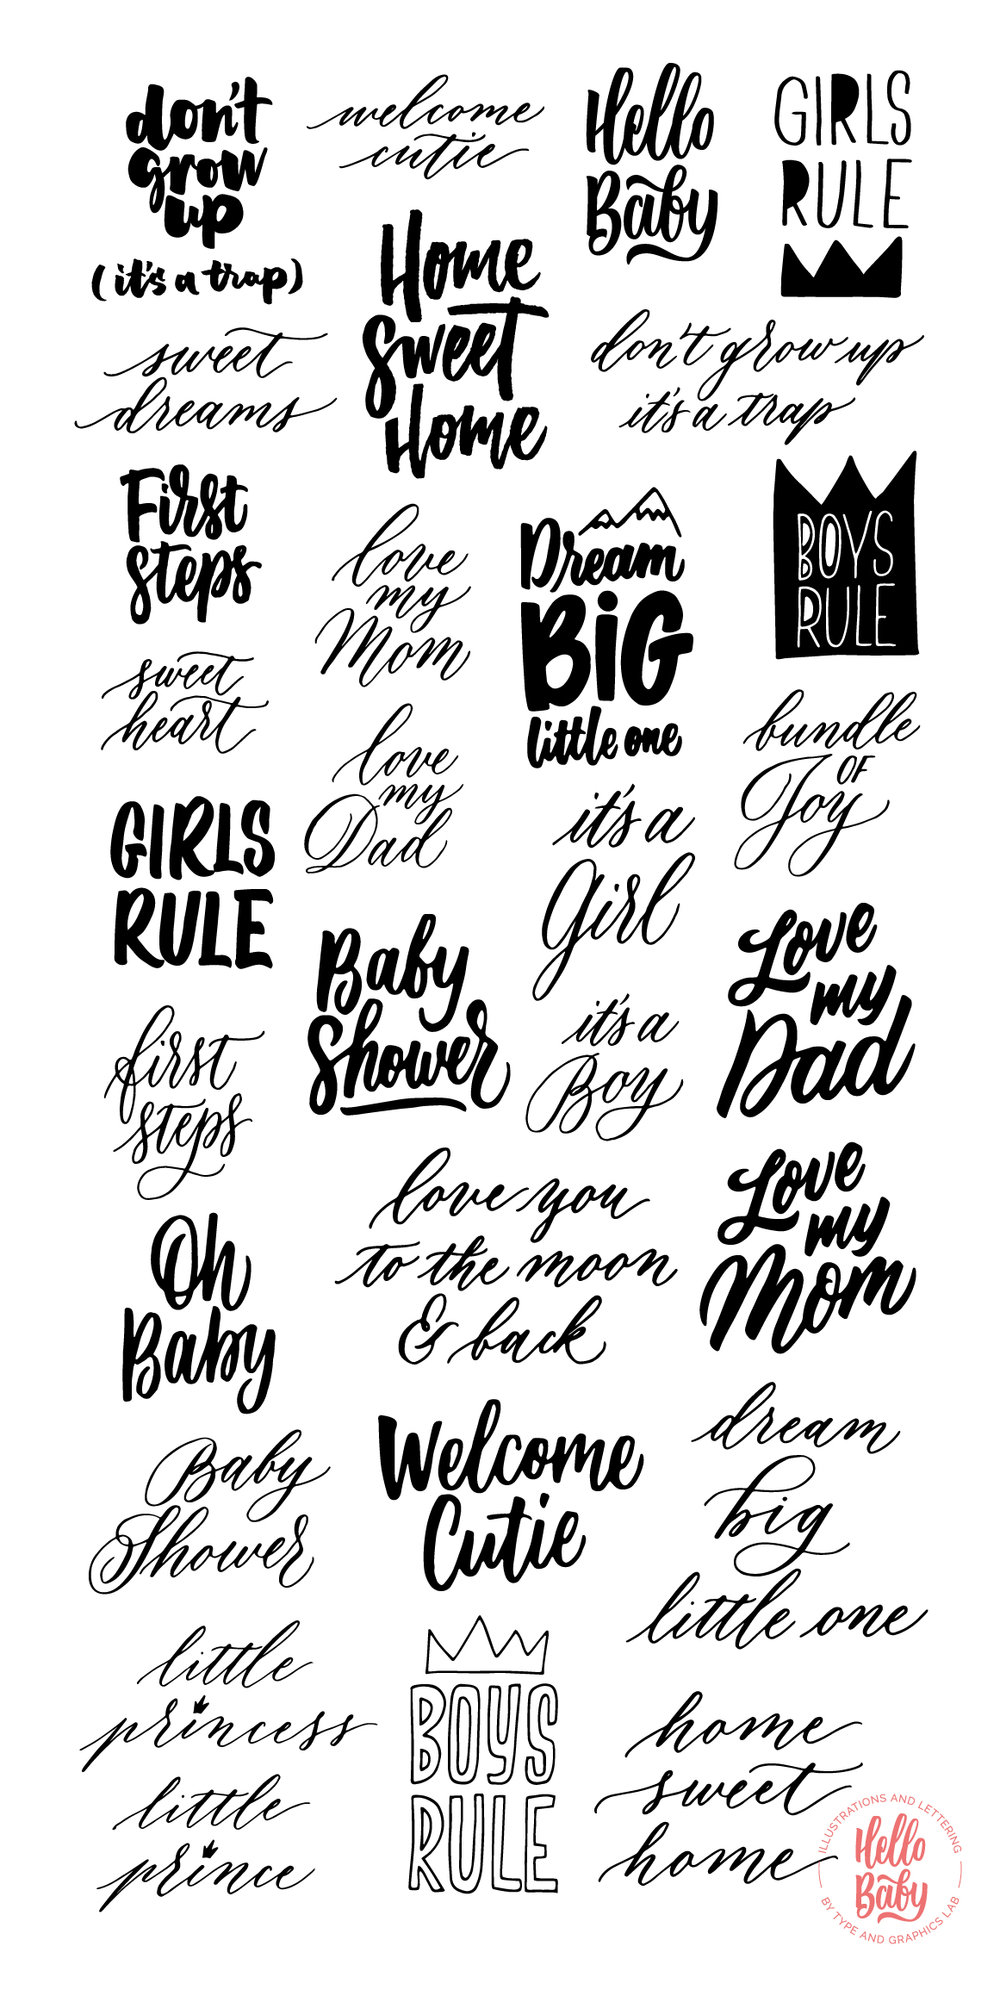 HELLO BABY is a collection of cute hand drawn illustrations, lettering overlays & surface patterns designed to welcome the little ones. It's a perfect bundle to decorate your baby shower cards, nursery art prints, and, of course, to announce the arrival of a new little person in your life! Available on Creative Market: https://crmrkt.com/GJqGNo